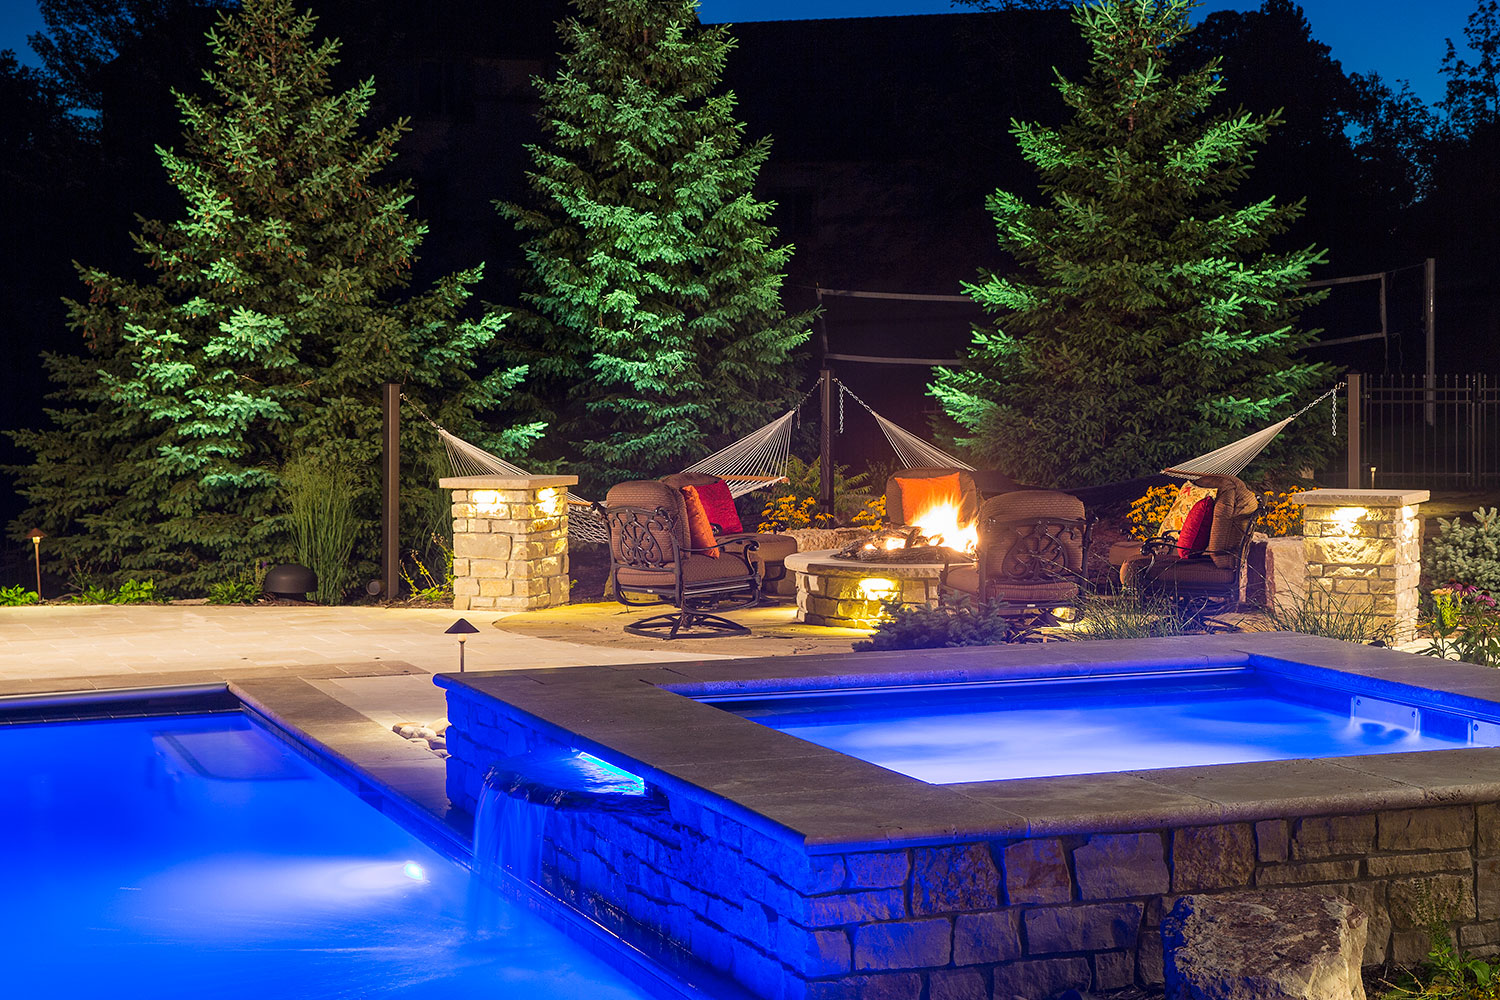 Hot Tub with Stone Veneer and Fire Pit - Your Choice - Just How to Relax